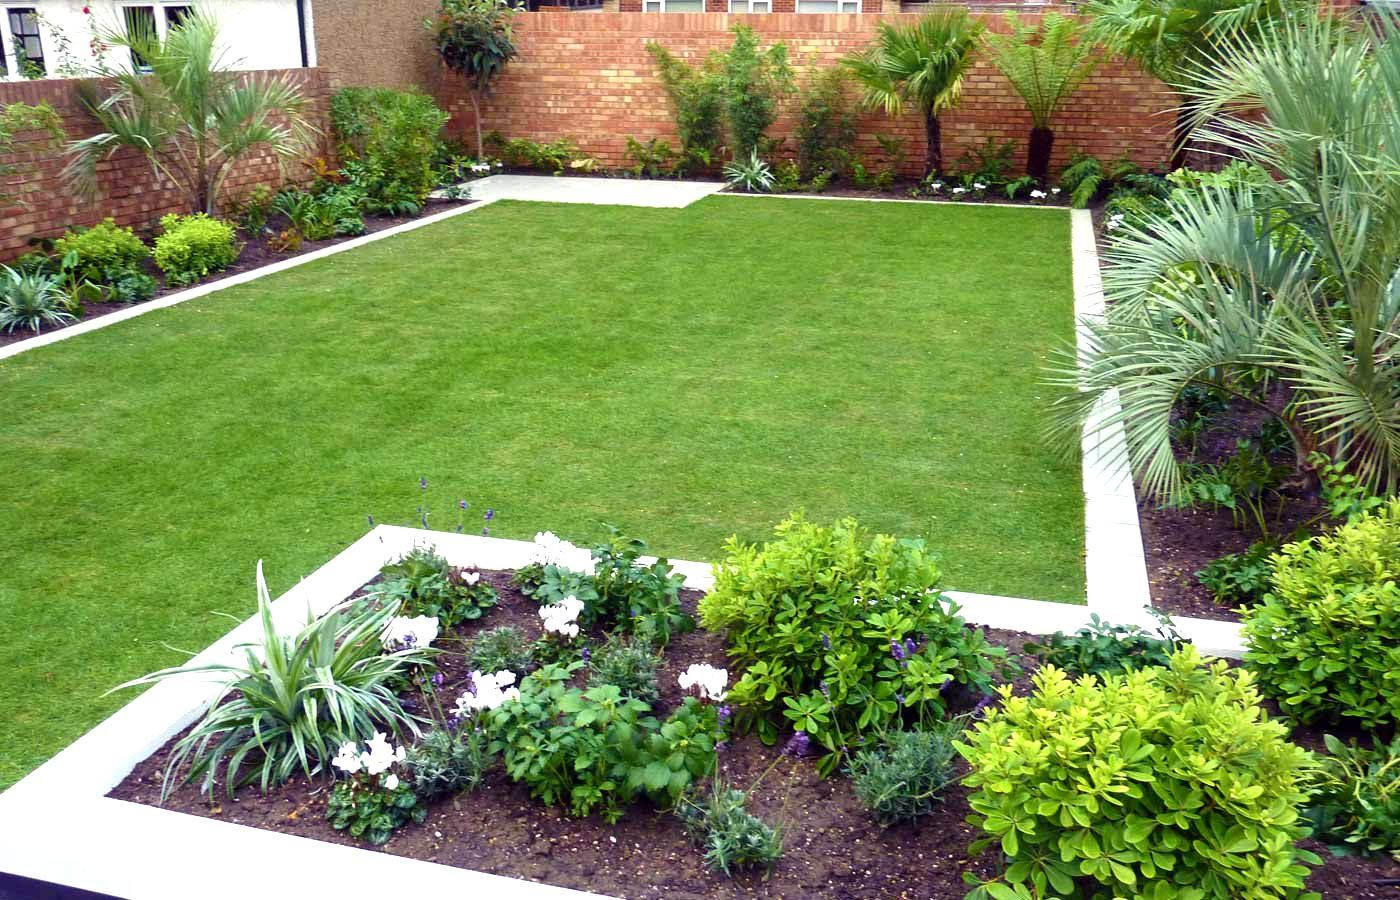 Simple garden designs no fret small garden design for Simple garden landscape